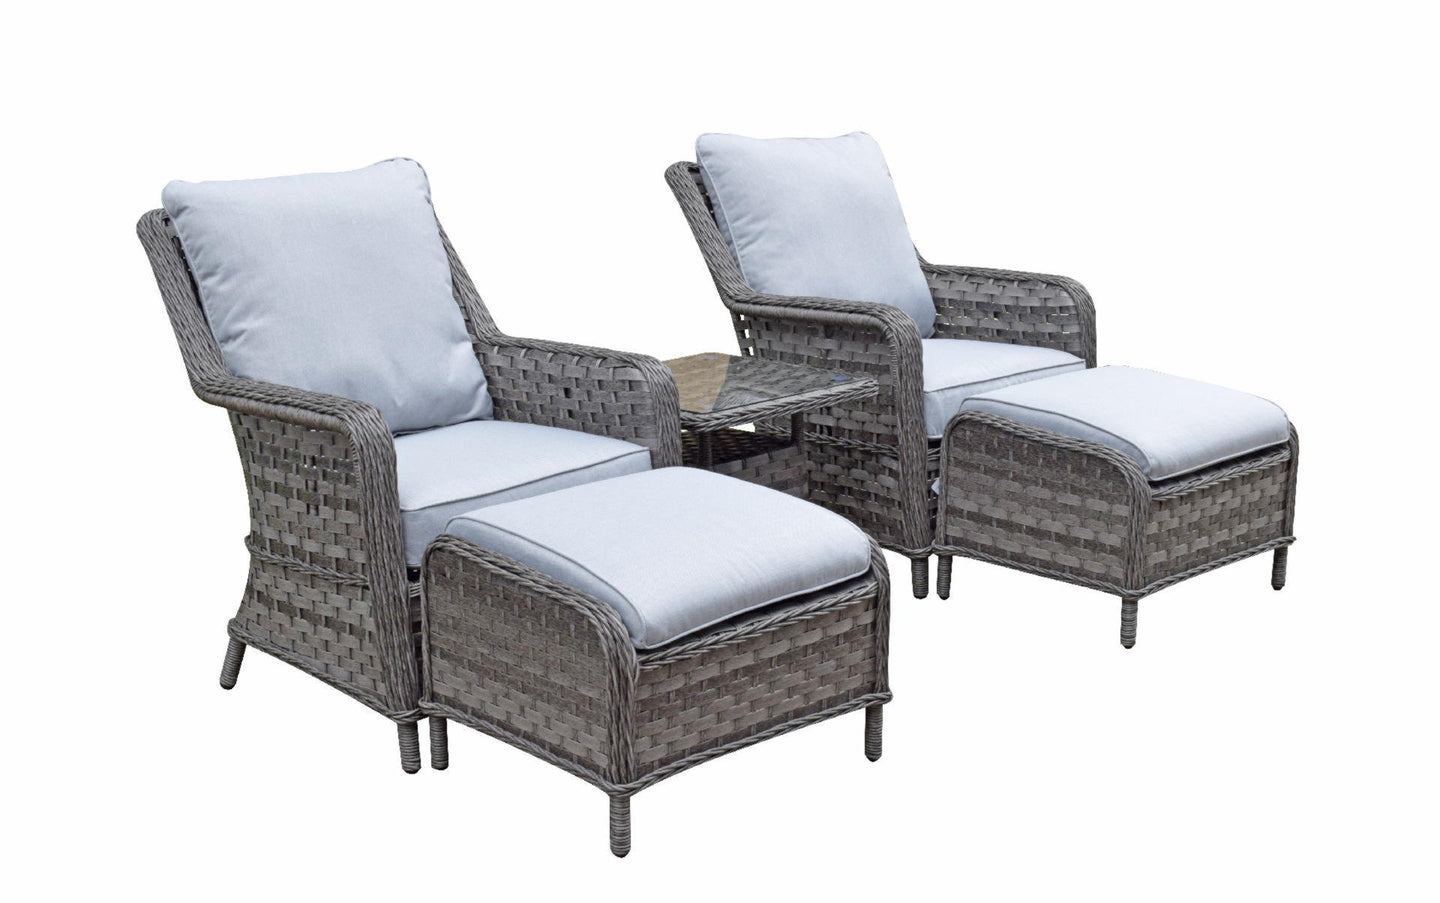 Hatherton Rattan- Two Seater Foot Stall Set- Grey